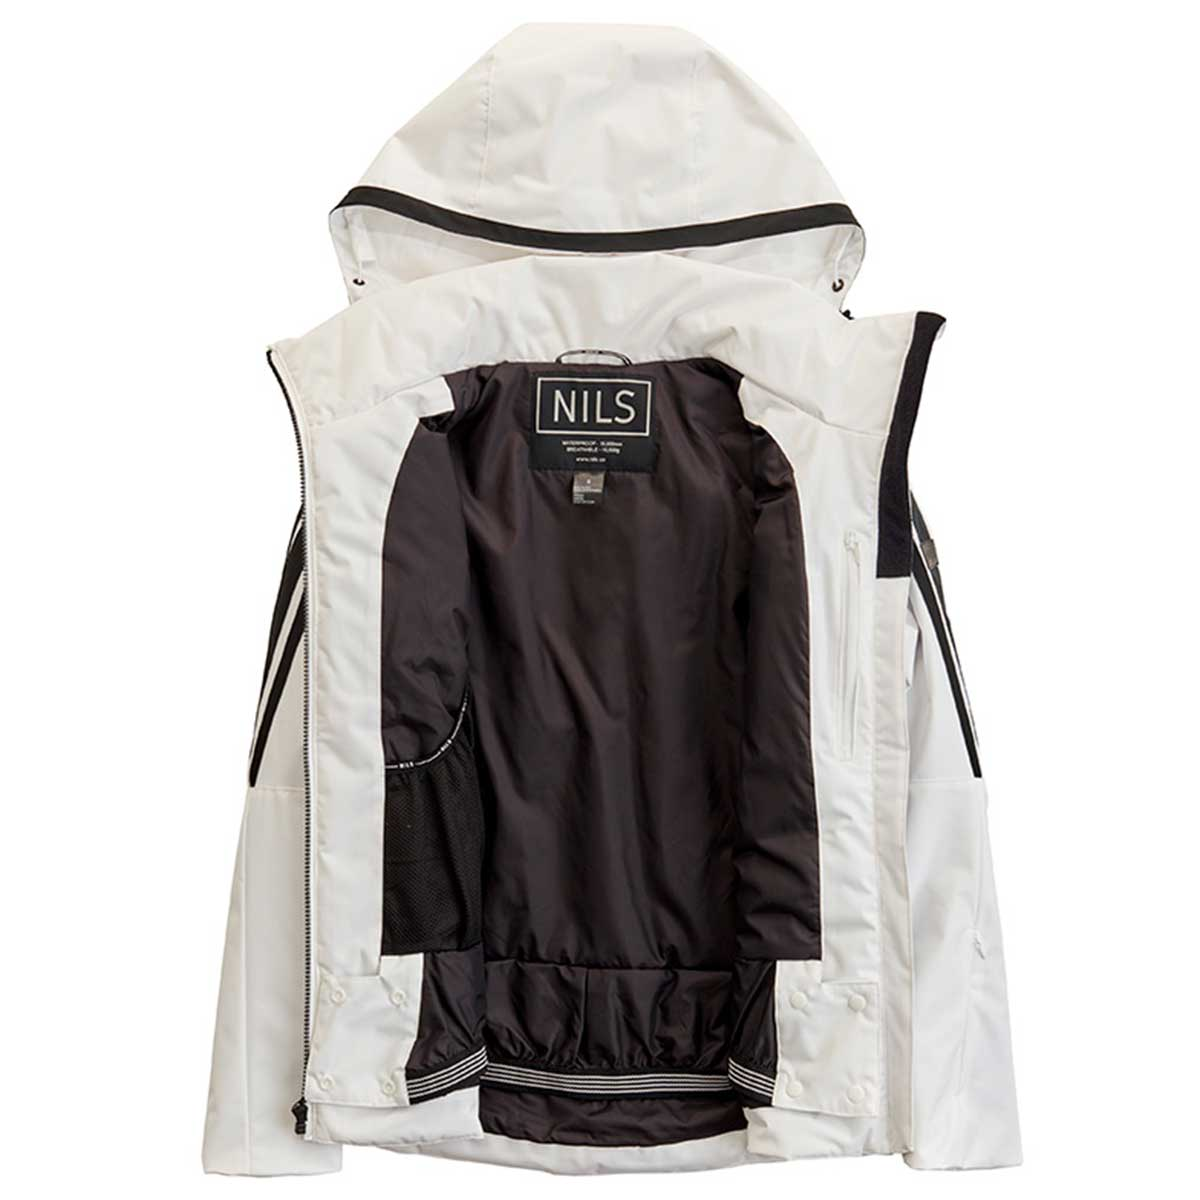 NILS Ester jacket in White